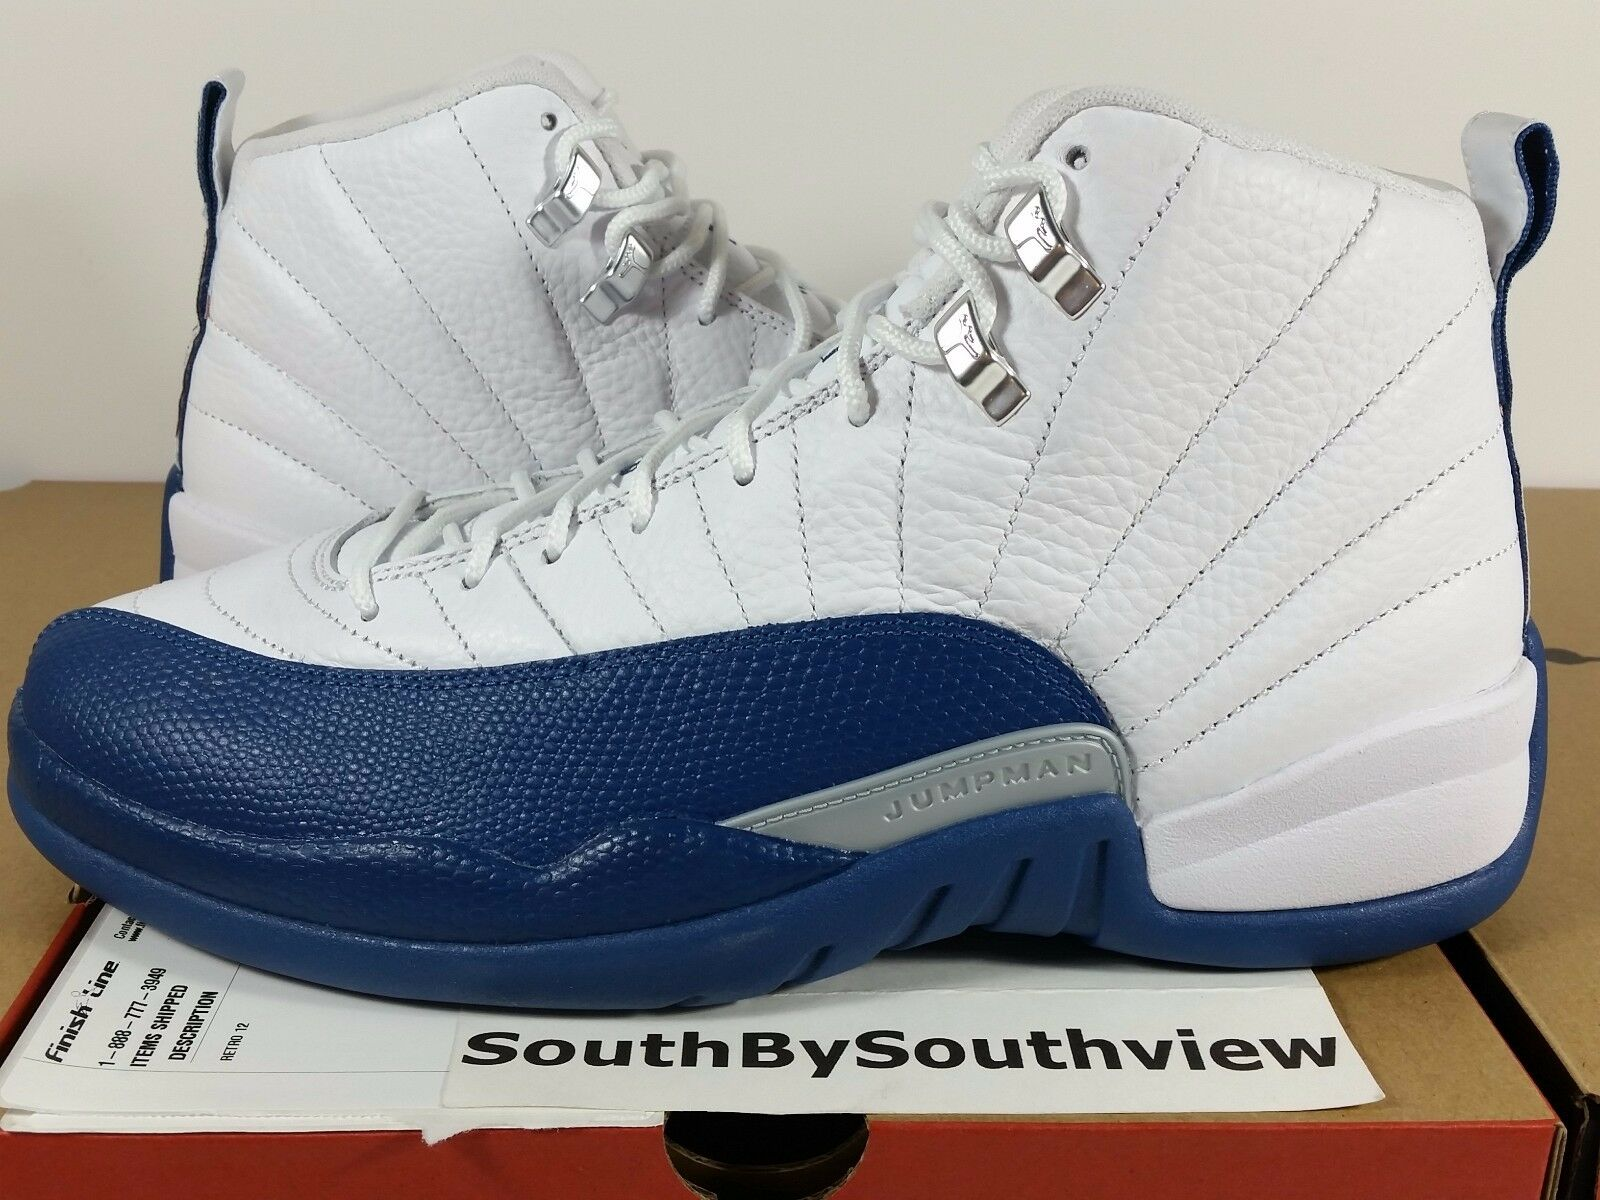 Nike Air Jordan 12 French bluee 2016 With Receipt XII Retro White 130690-113 DS